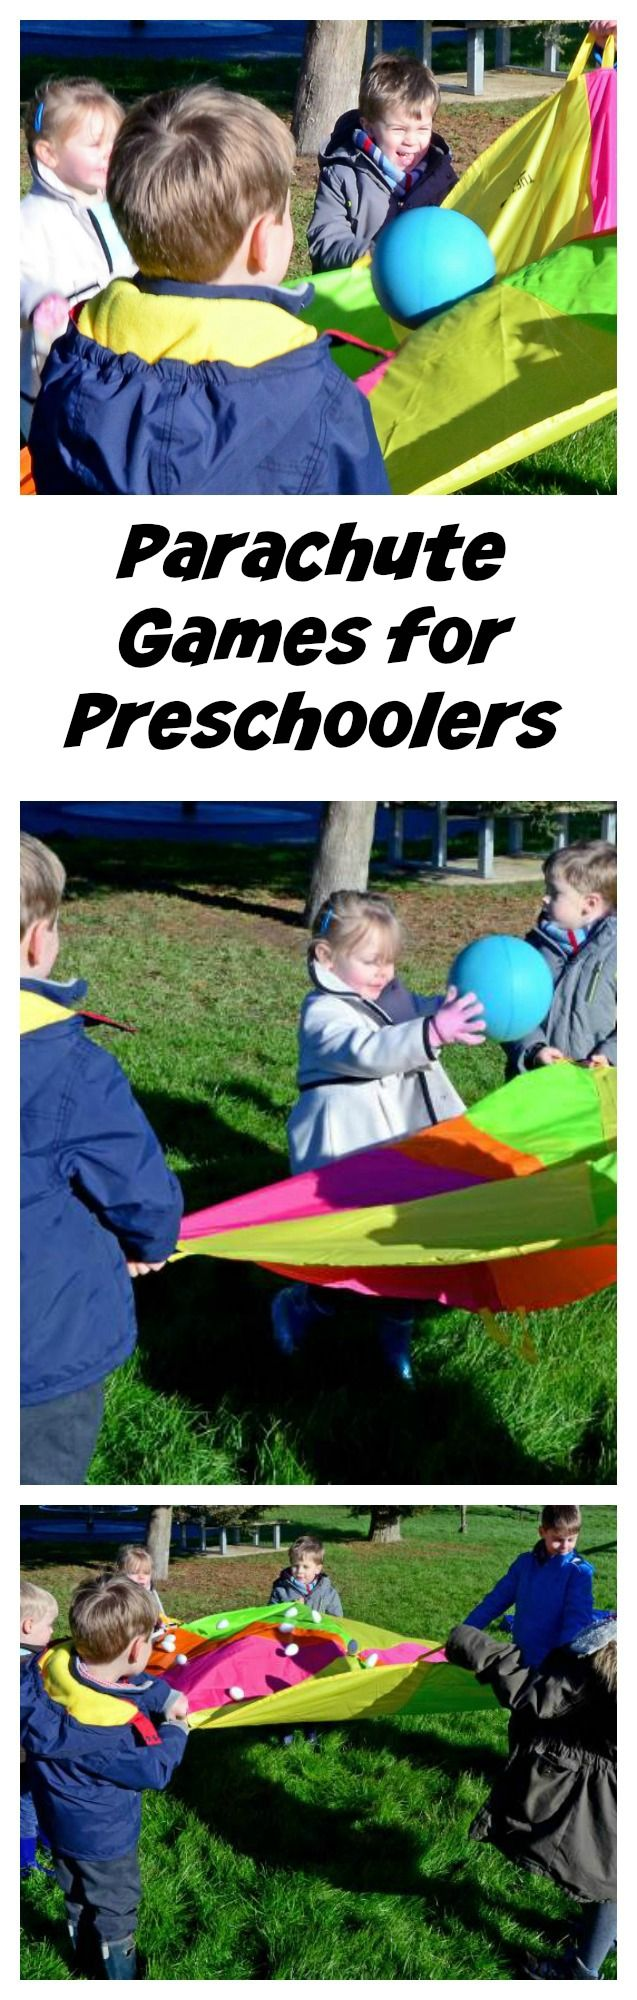 Parachute games for preschoolers #LearningIsFun